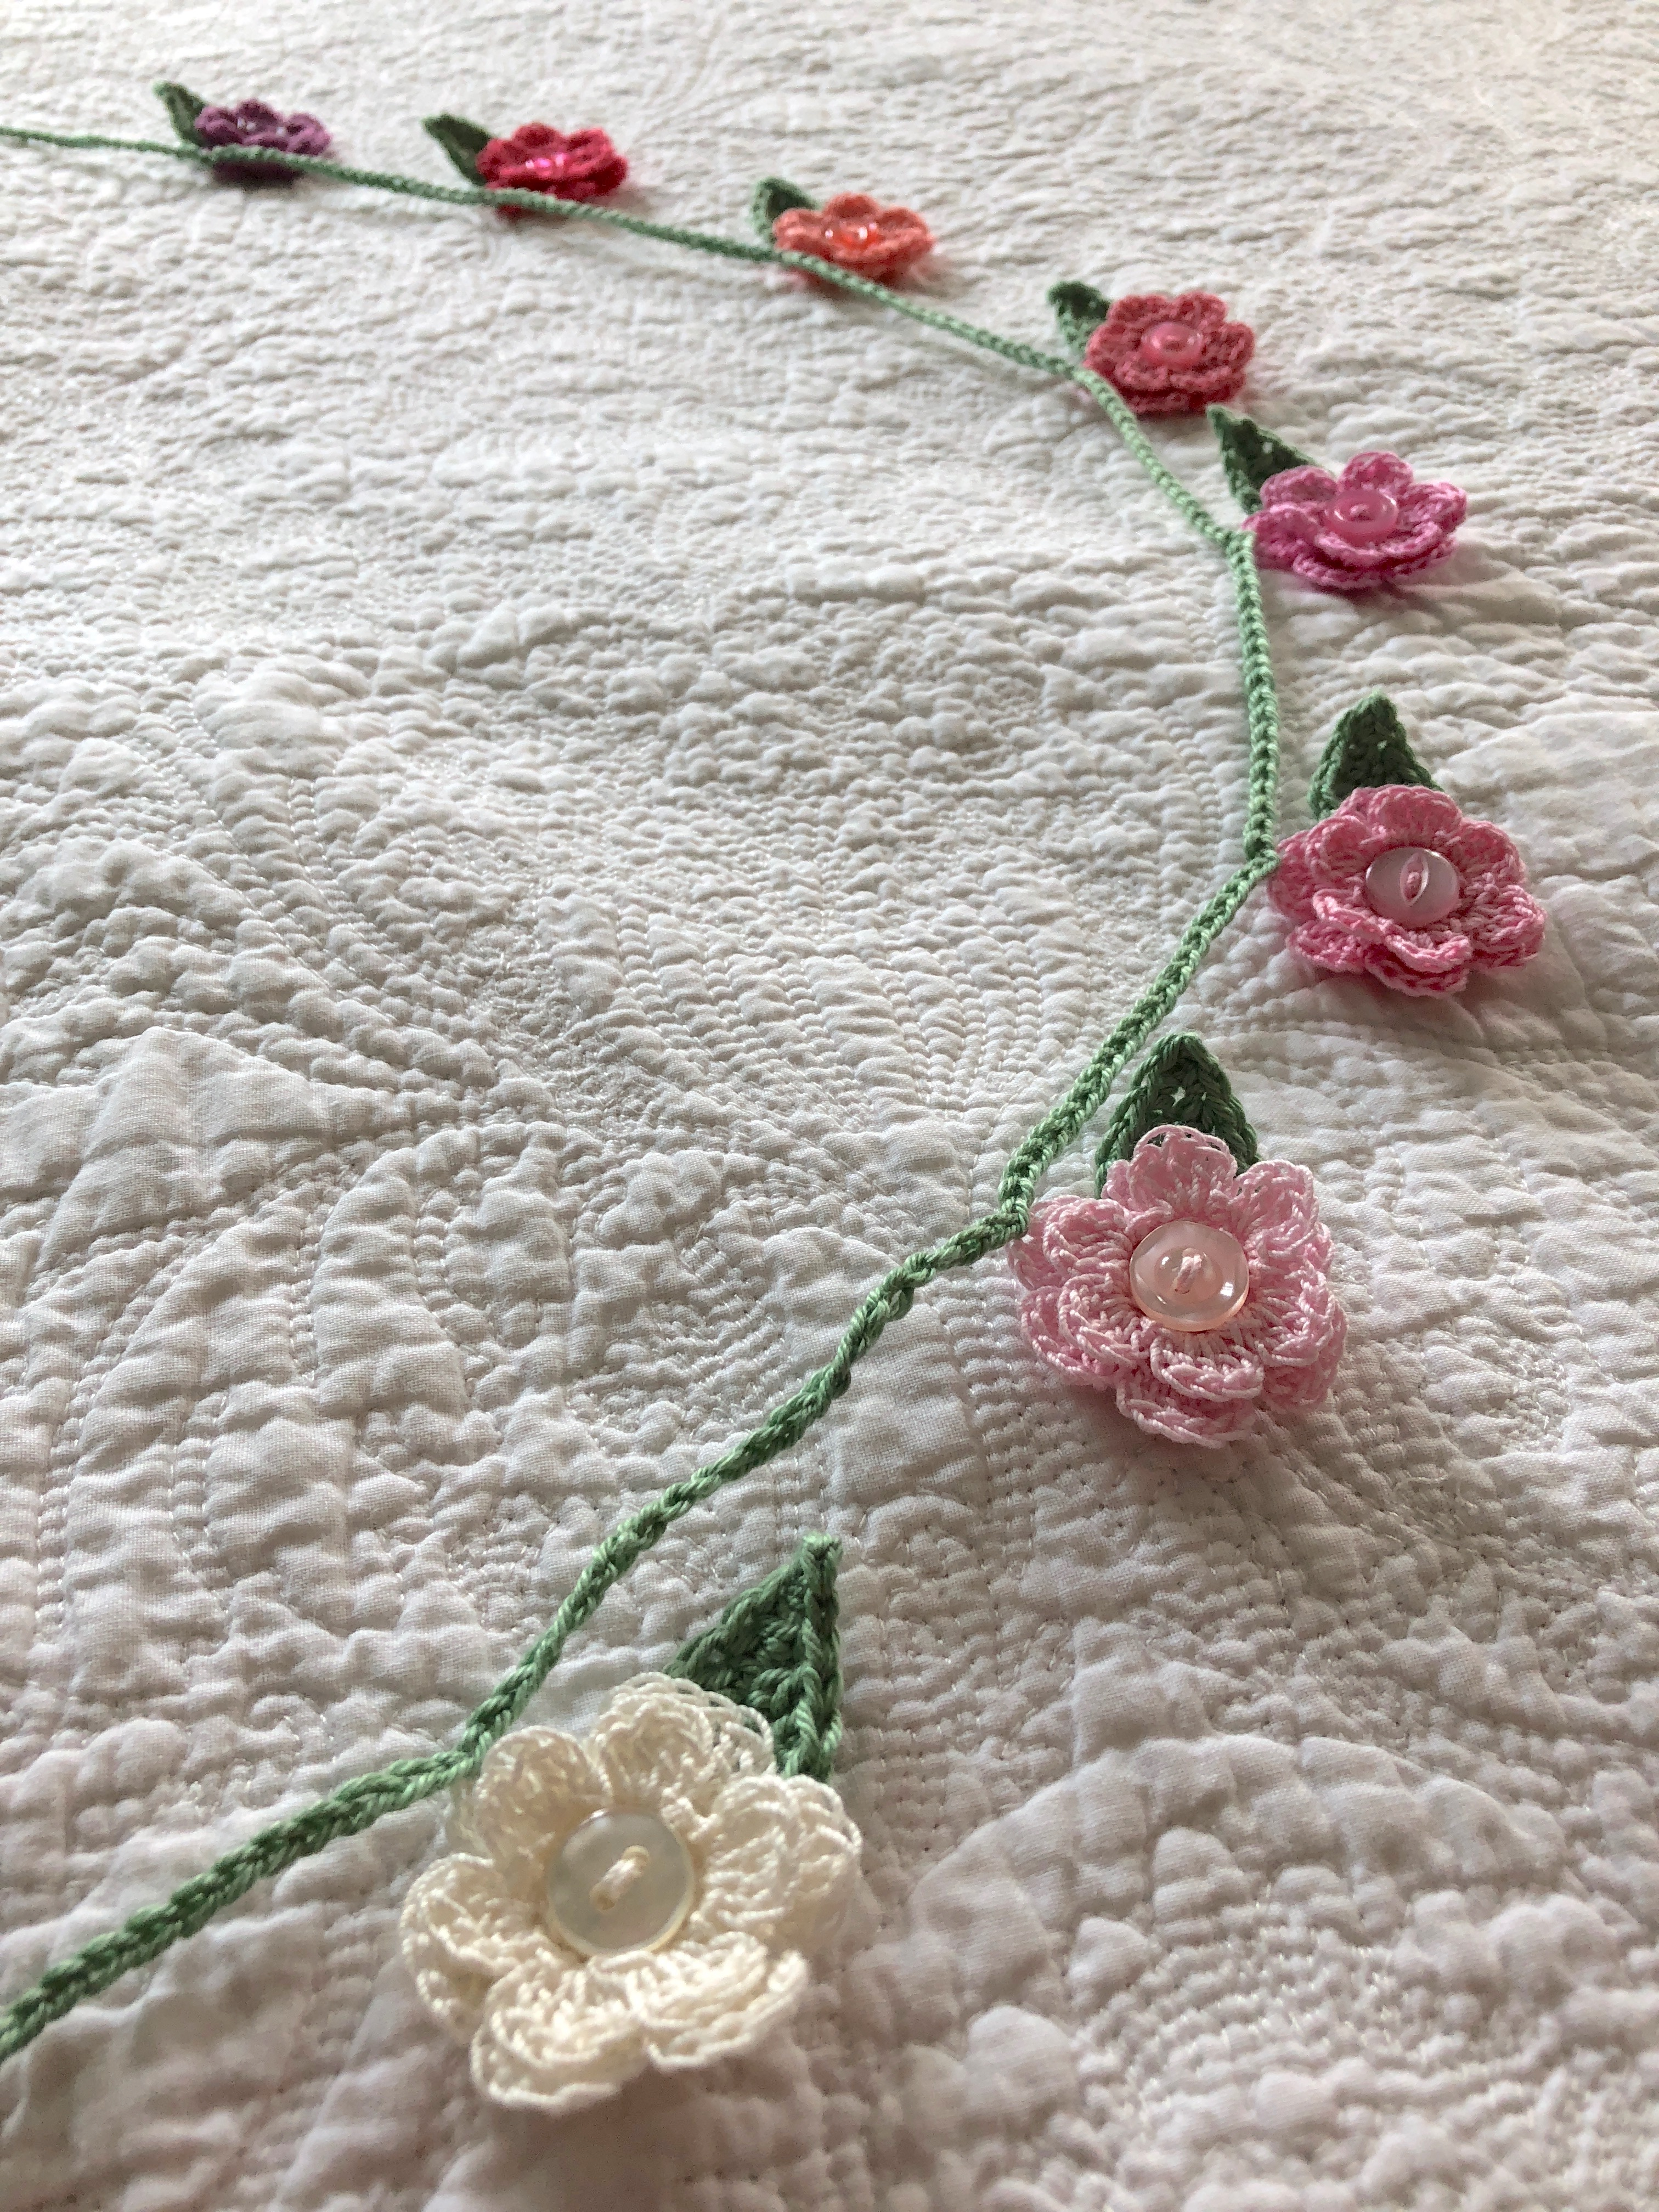 A hand crocheted small flower and leaf garland in graduated colour way from white through pinks to purple.